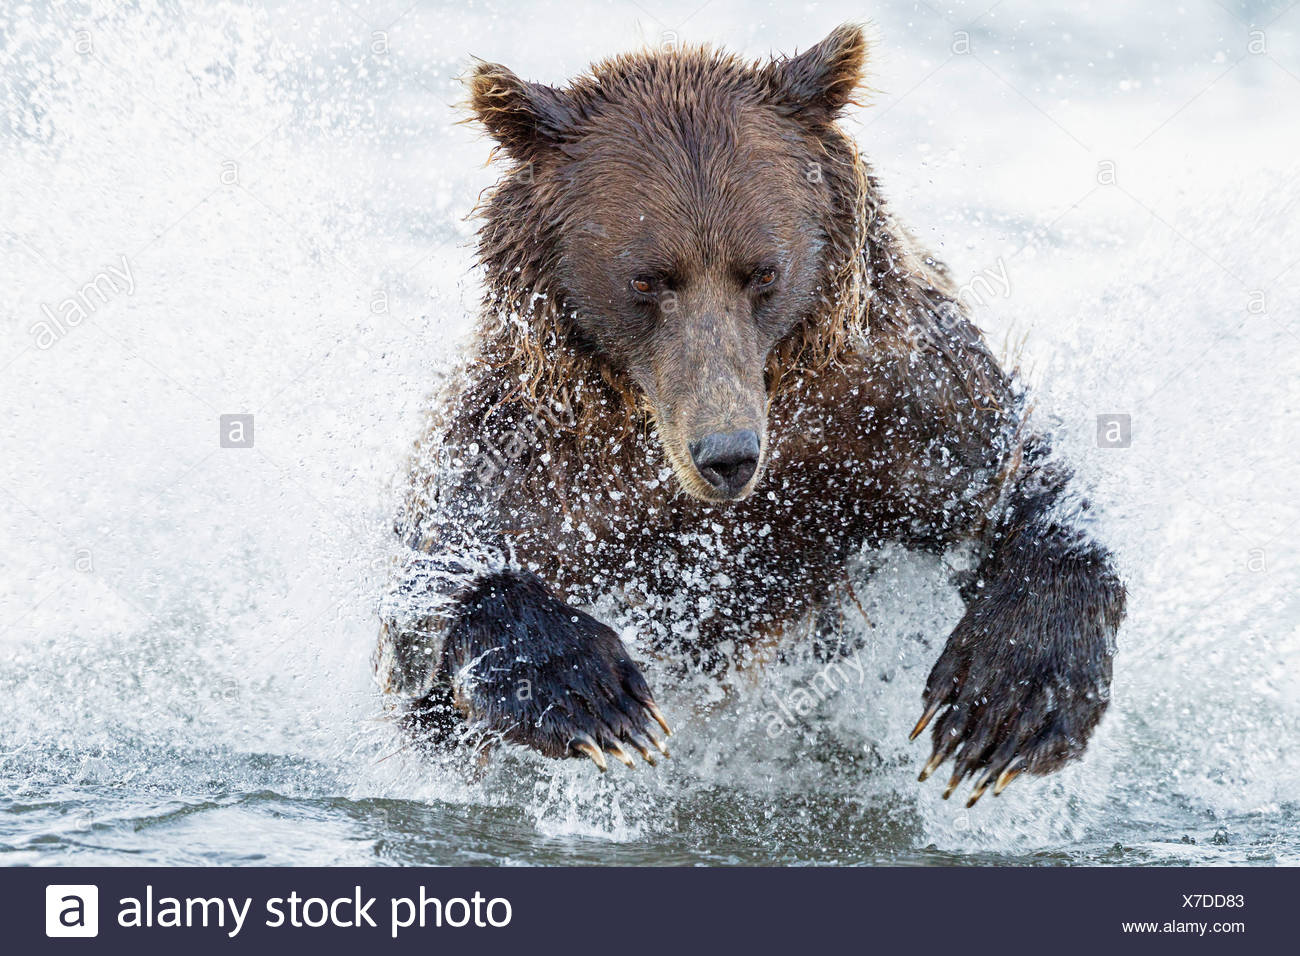 USA, Alaska, Brown bear is trying to catch salmon in Silver salmon creek at Lake Clark National Park and Preserve - Stock Image